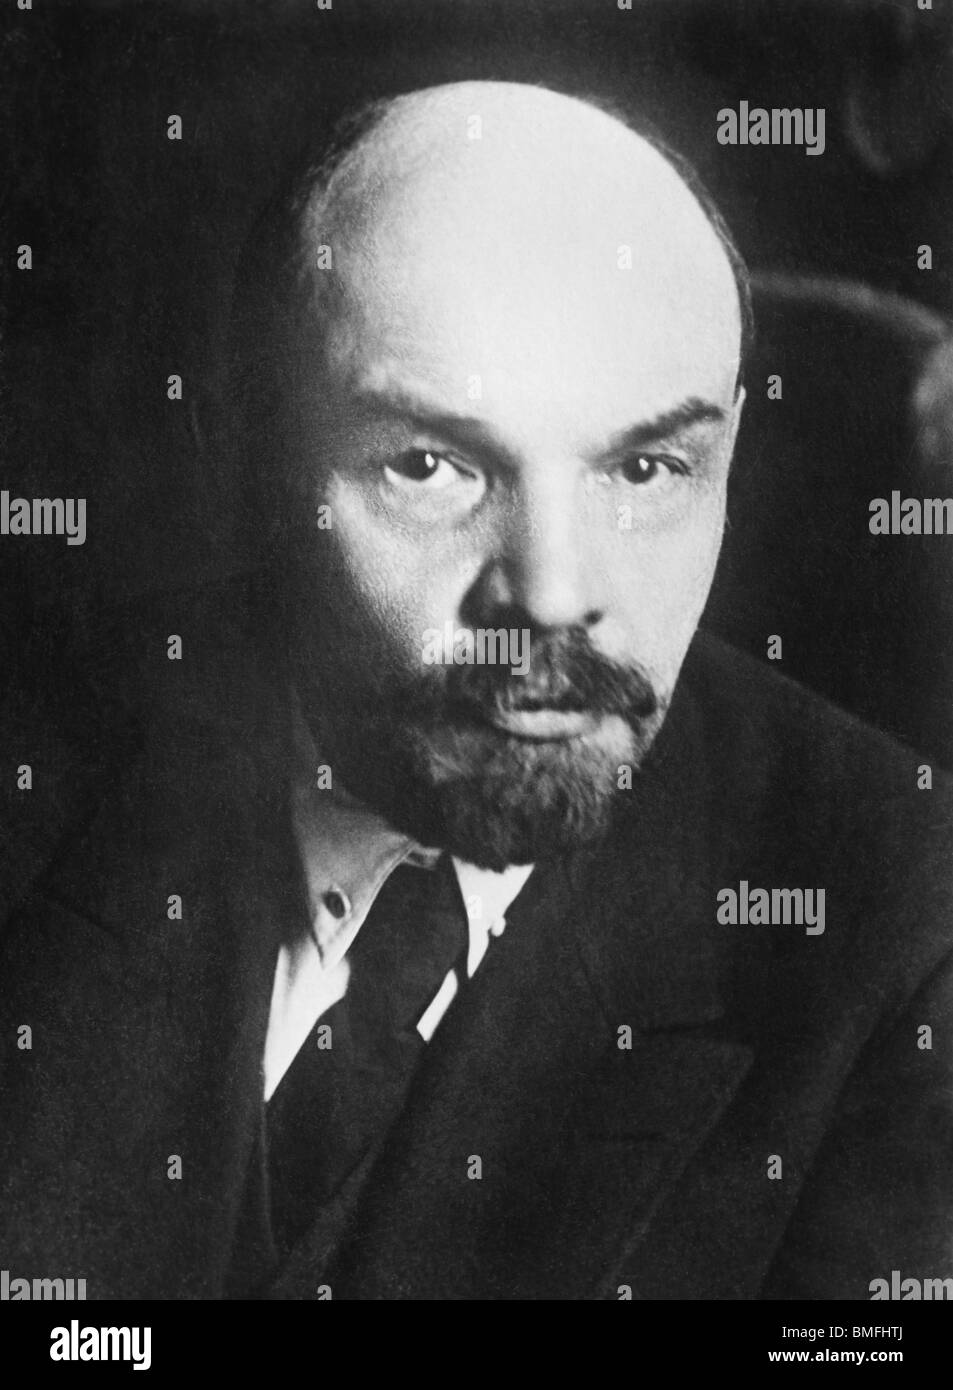 Undated portrait photo of Russian revolutionary and communist leader Vladimir Lenin (1870 – 1924). - Stock Image